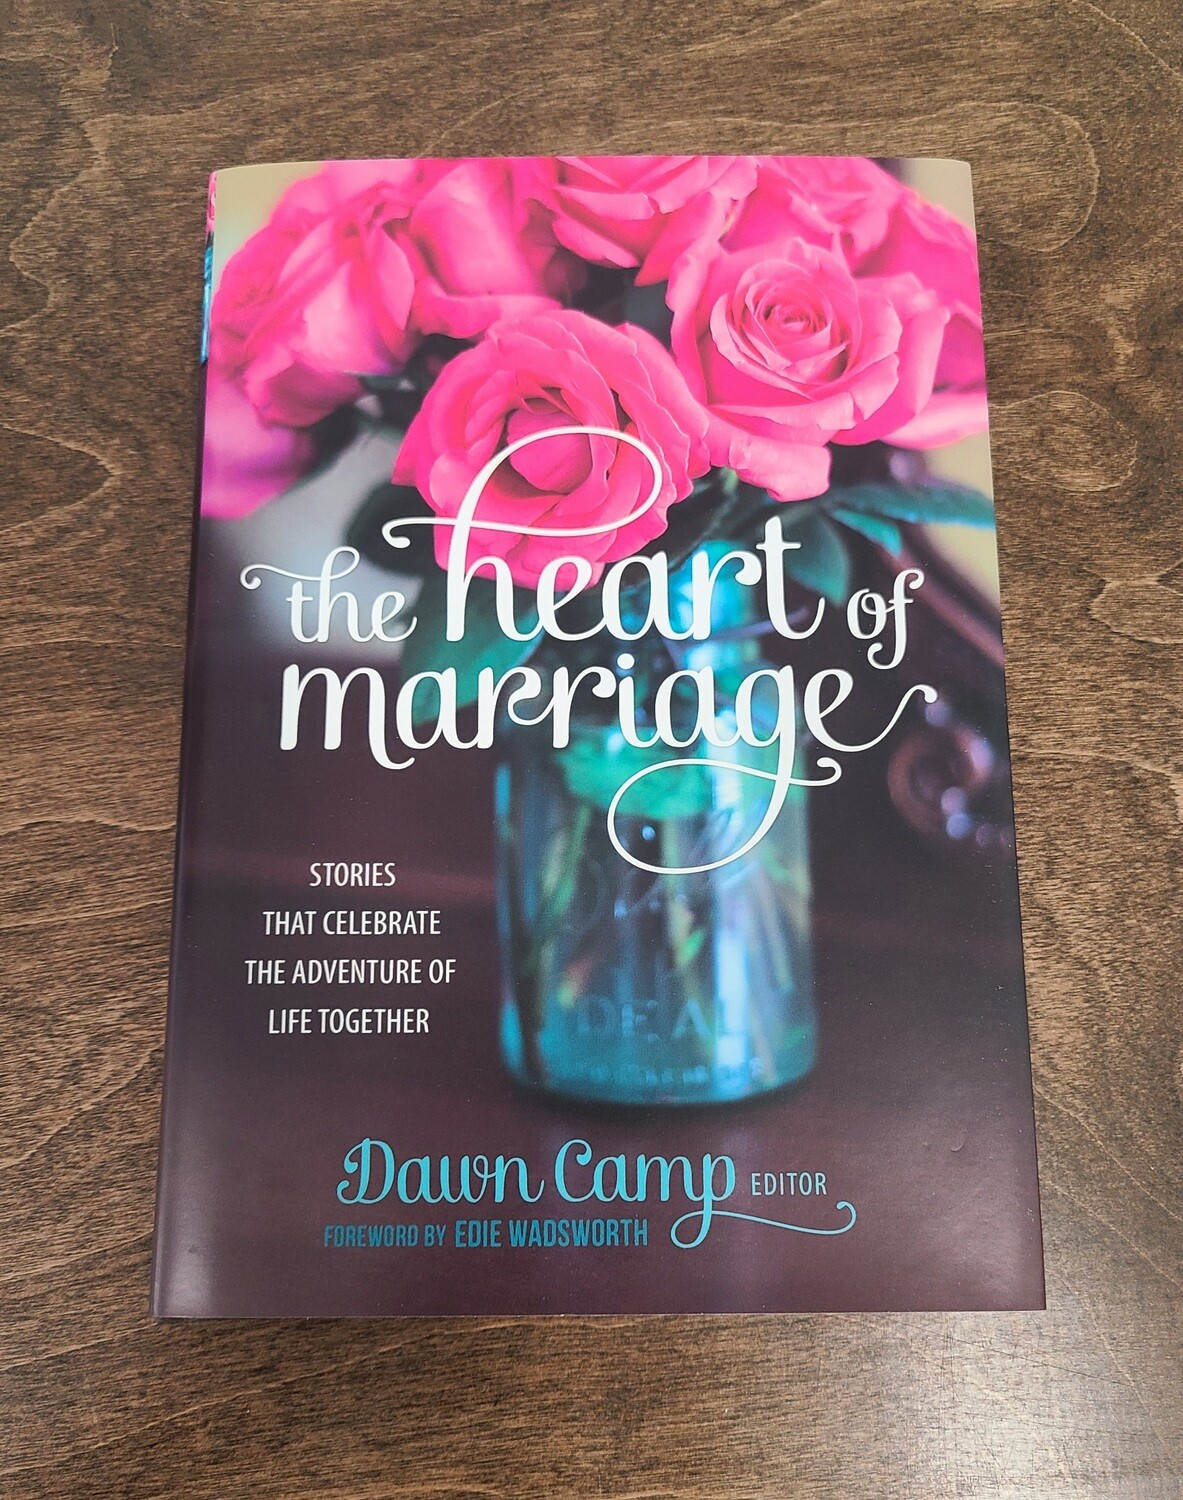 The Heart of Marriage by Dawn Camp